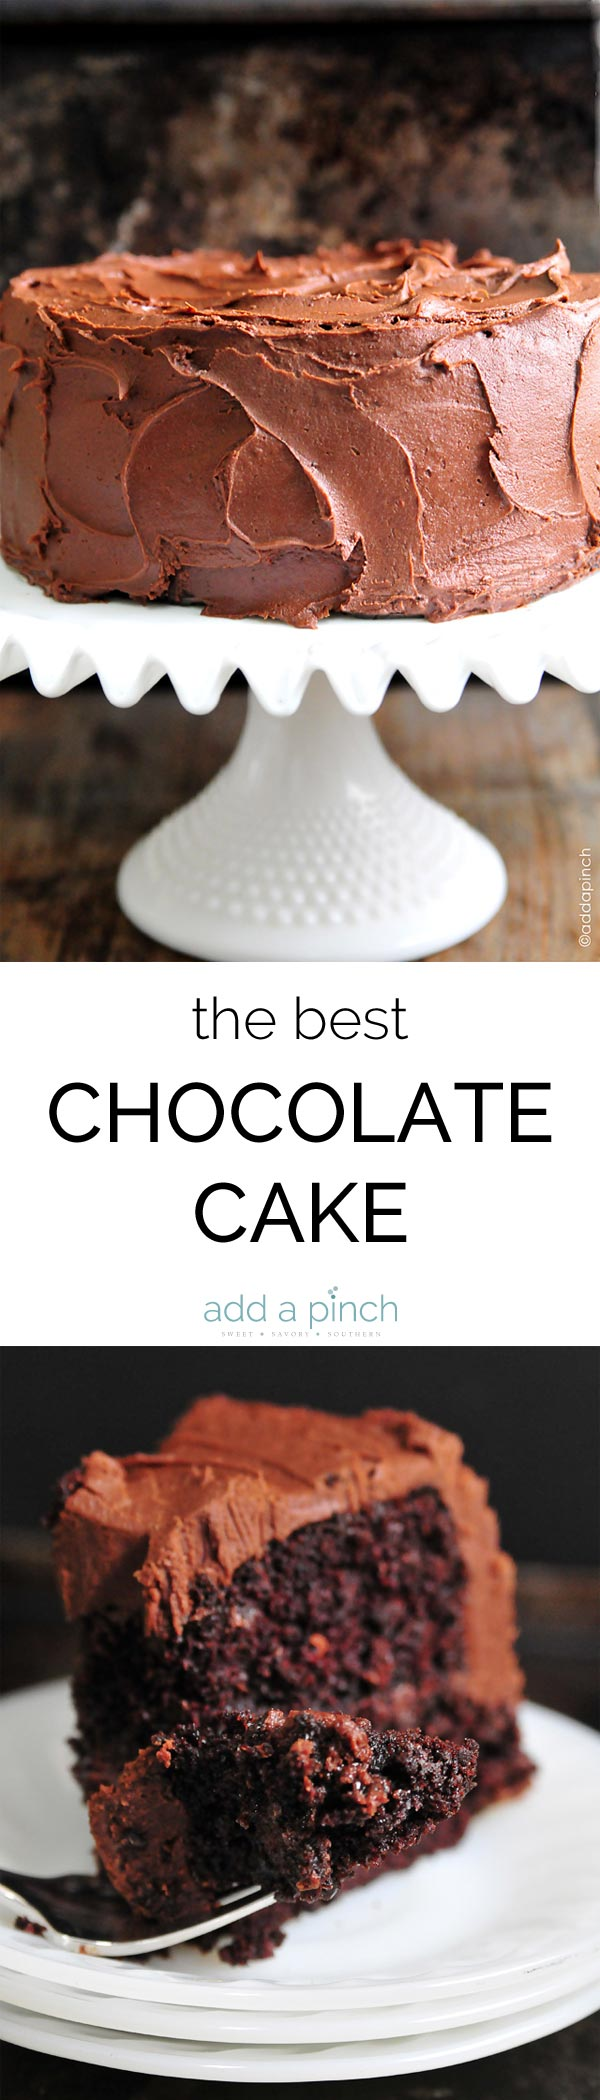 The Best Chocolate Cake Recipe Ever. The Best Chocolate Cake recipe with decadent Chocolate Buttercream Frosting that will quickly become your favorite! // addapinch.com